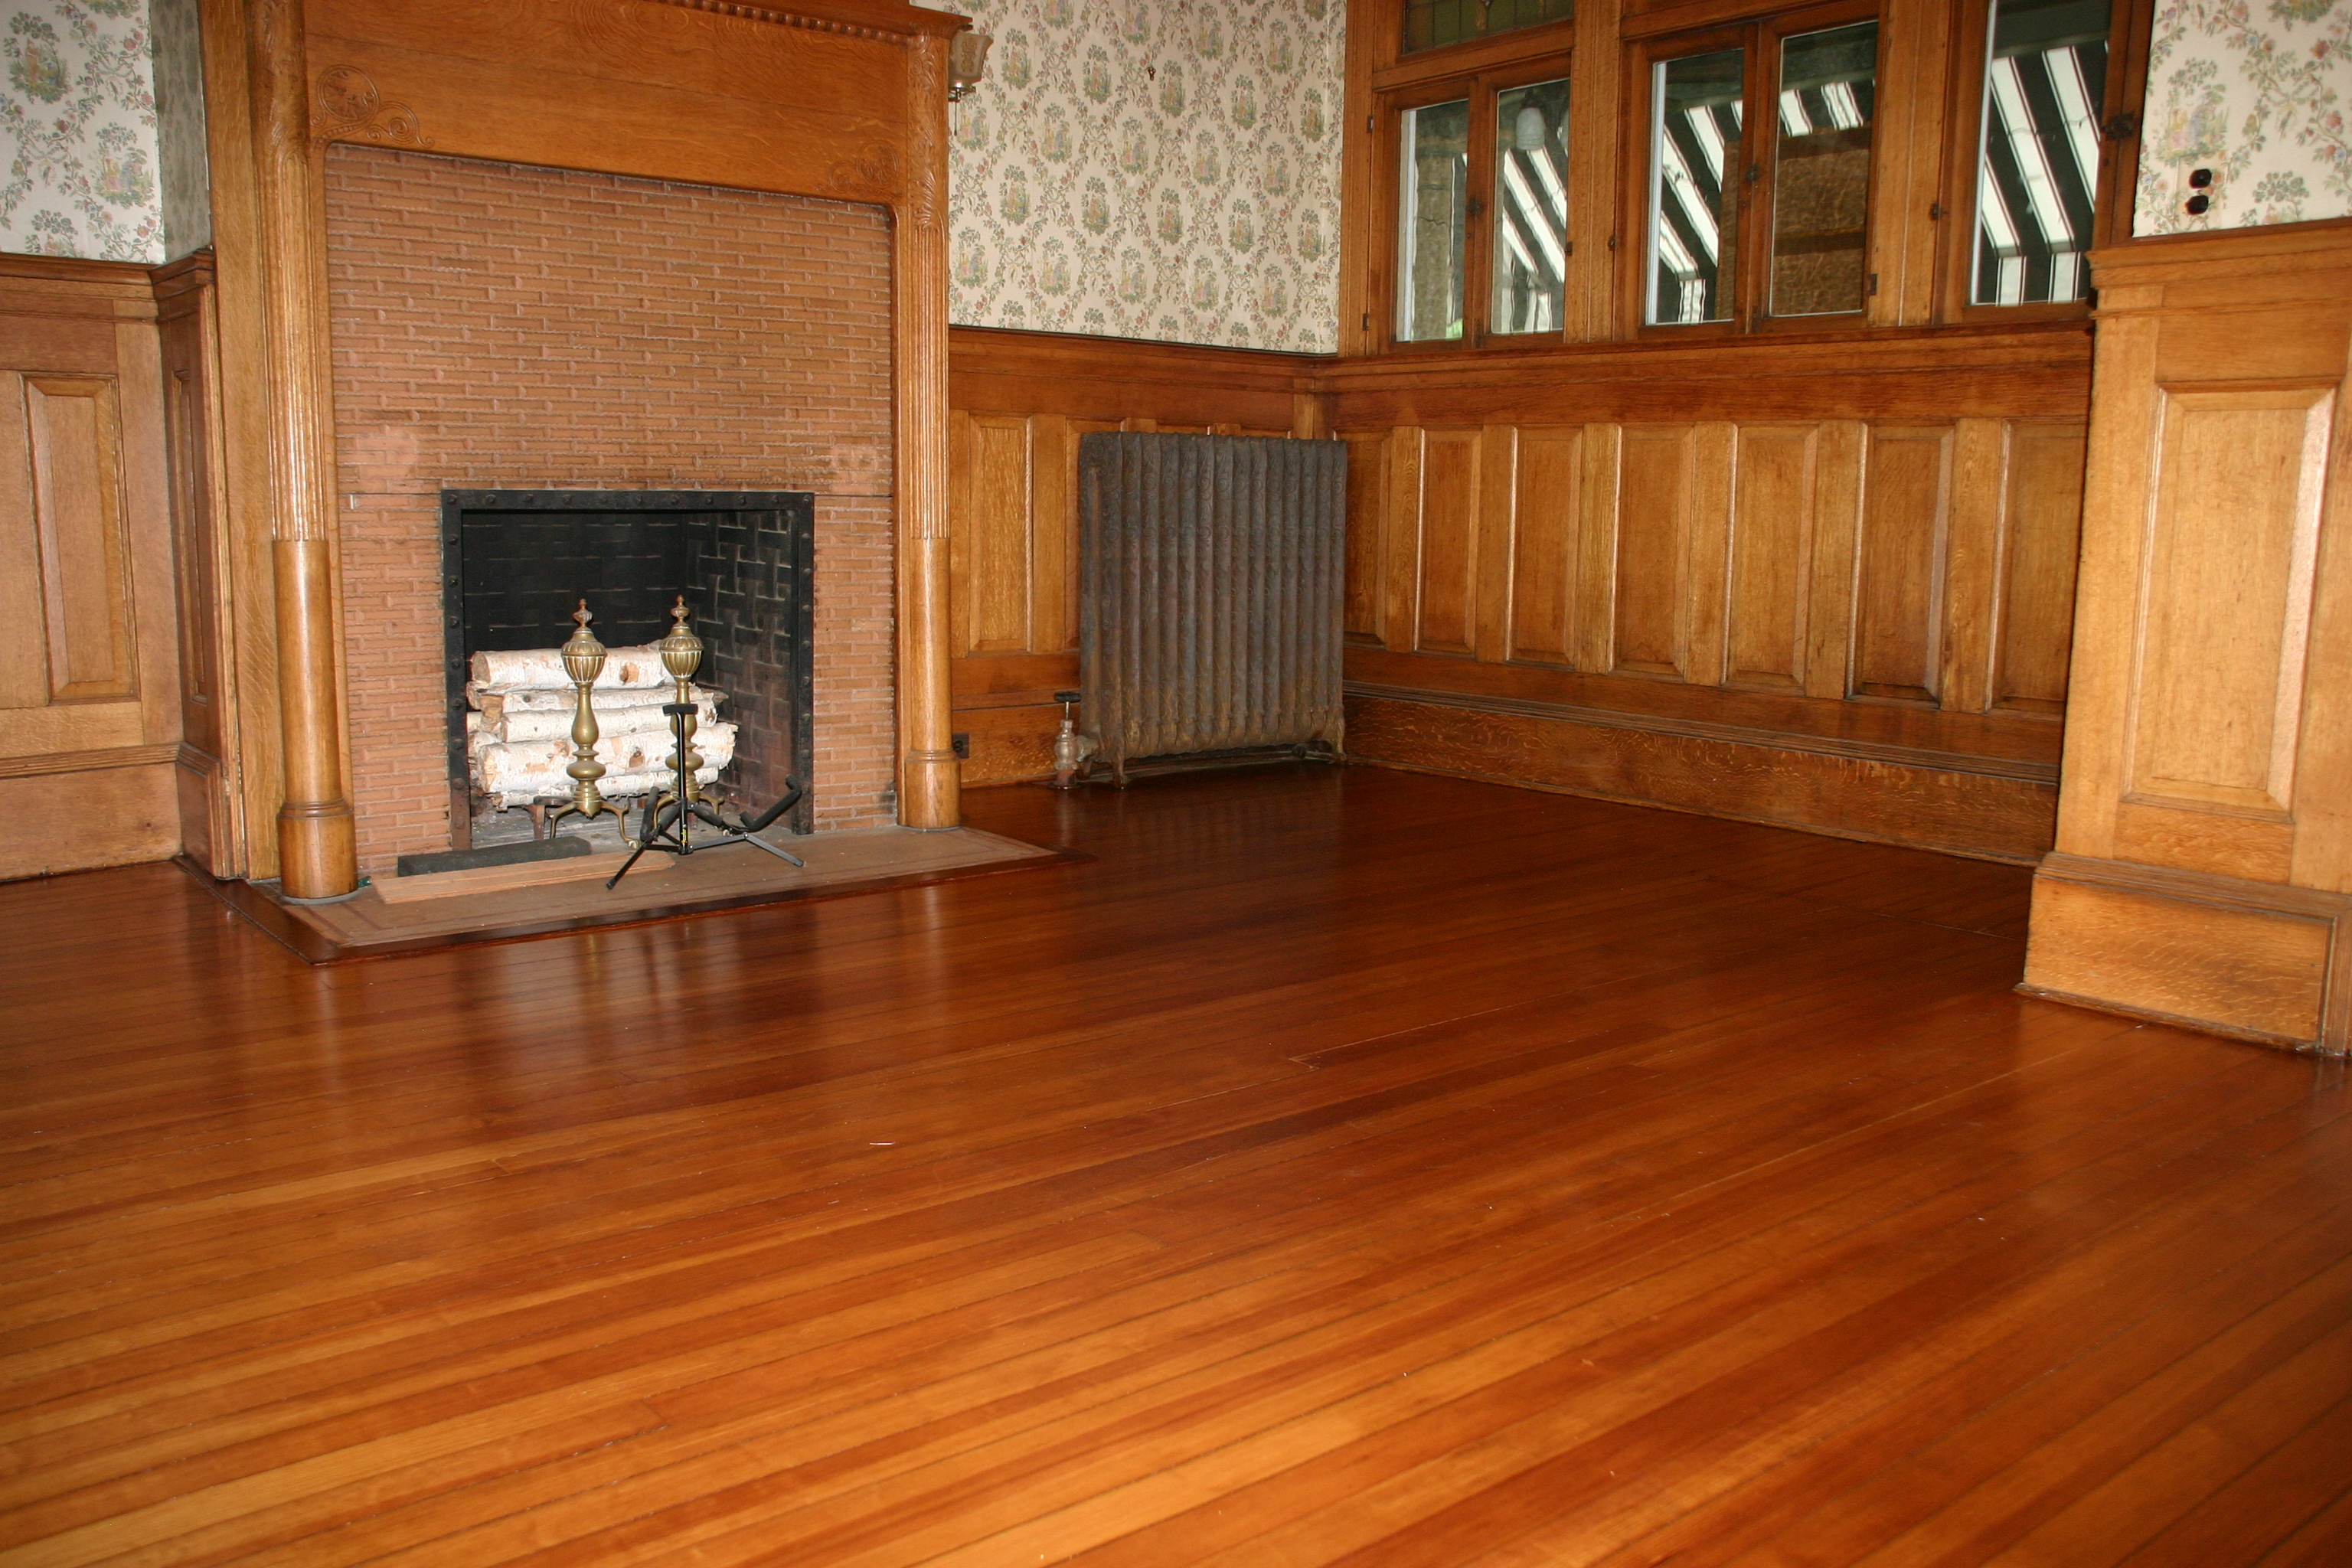 Hardwood Floor Stain Colors 3072 x 2048